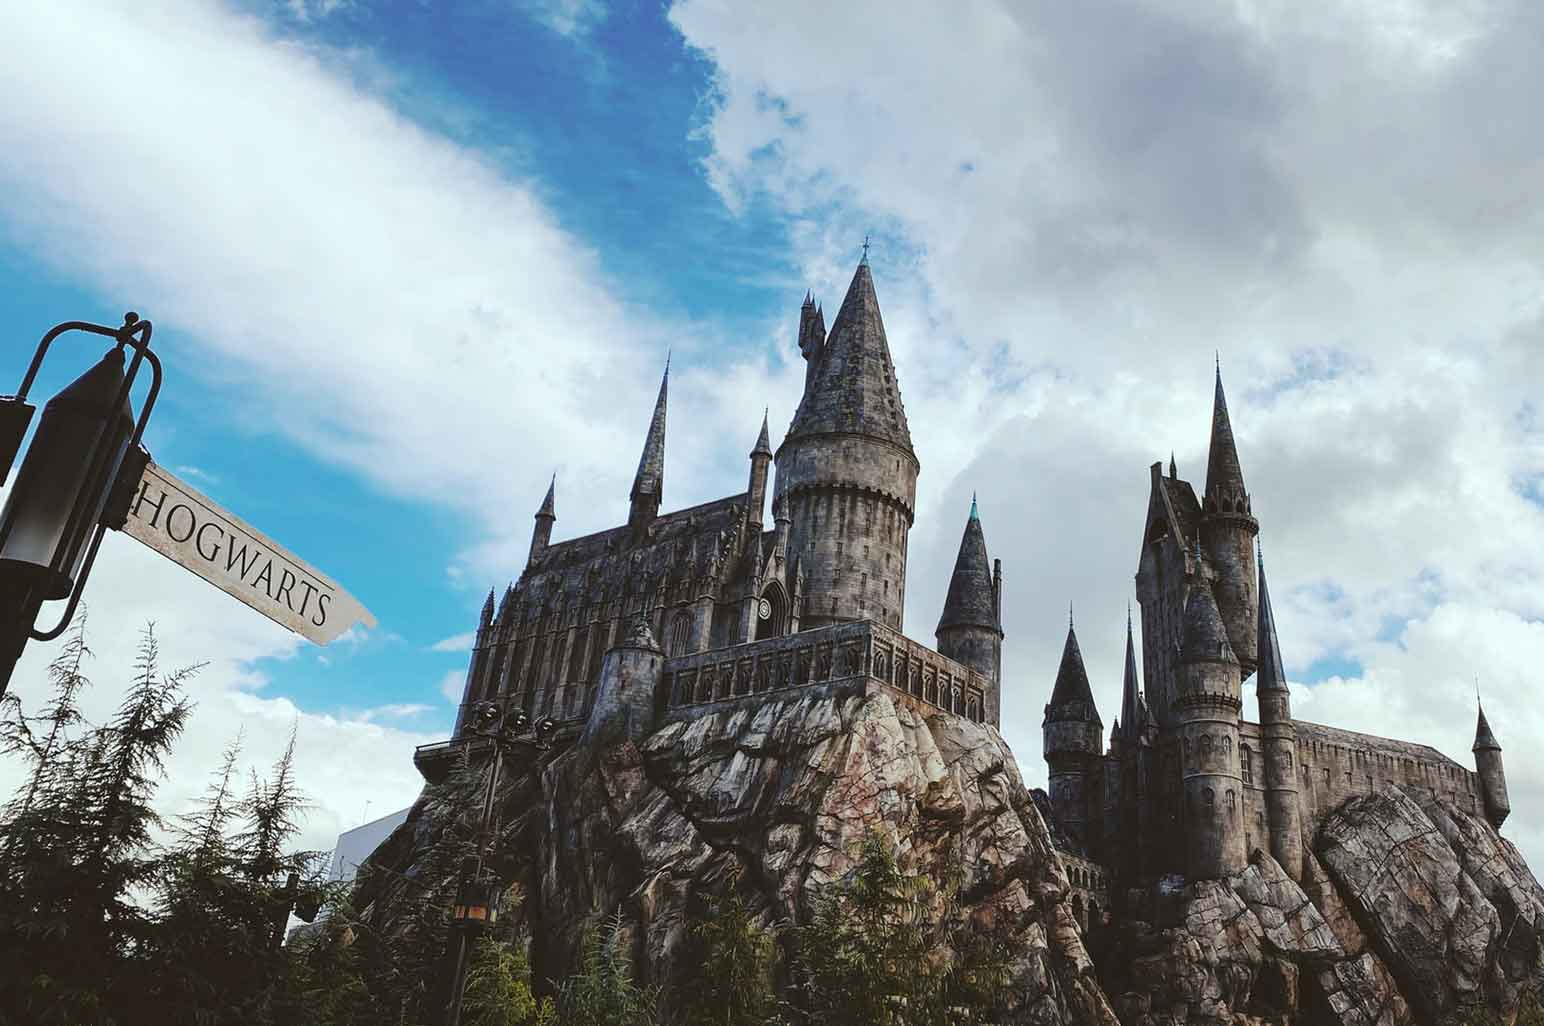 9 Harry Potter Destinations You Can Visit In Real Life - Wizarding World oof Harry Potter